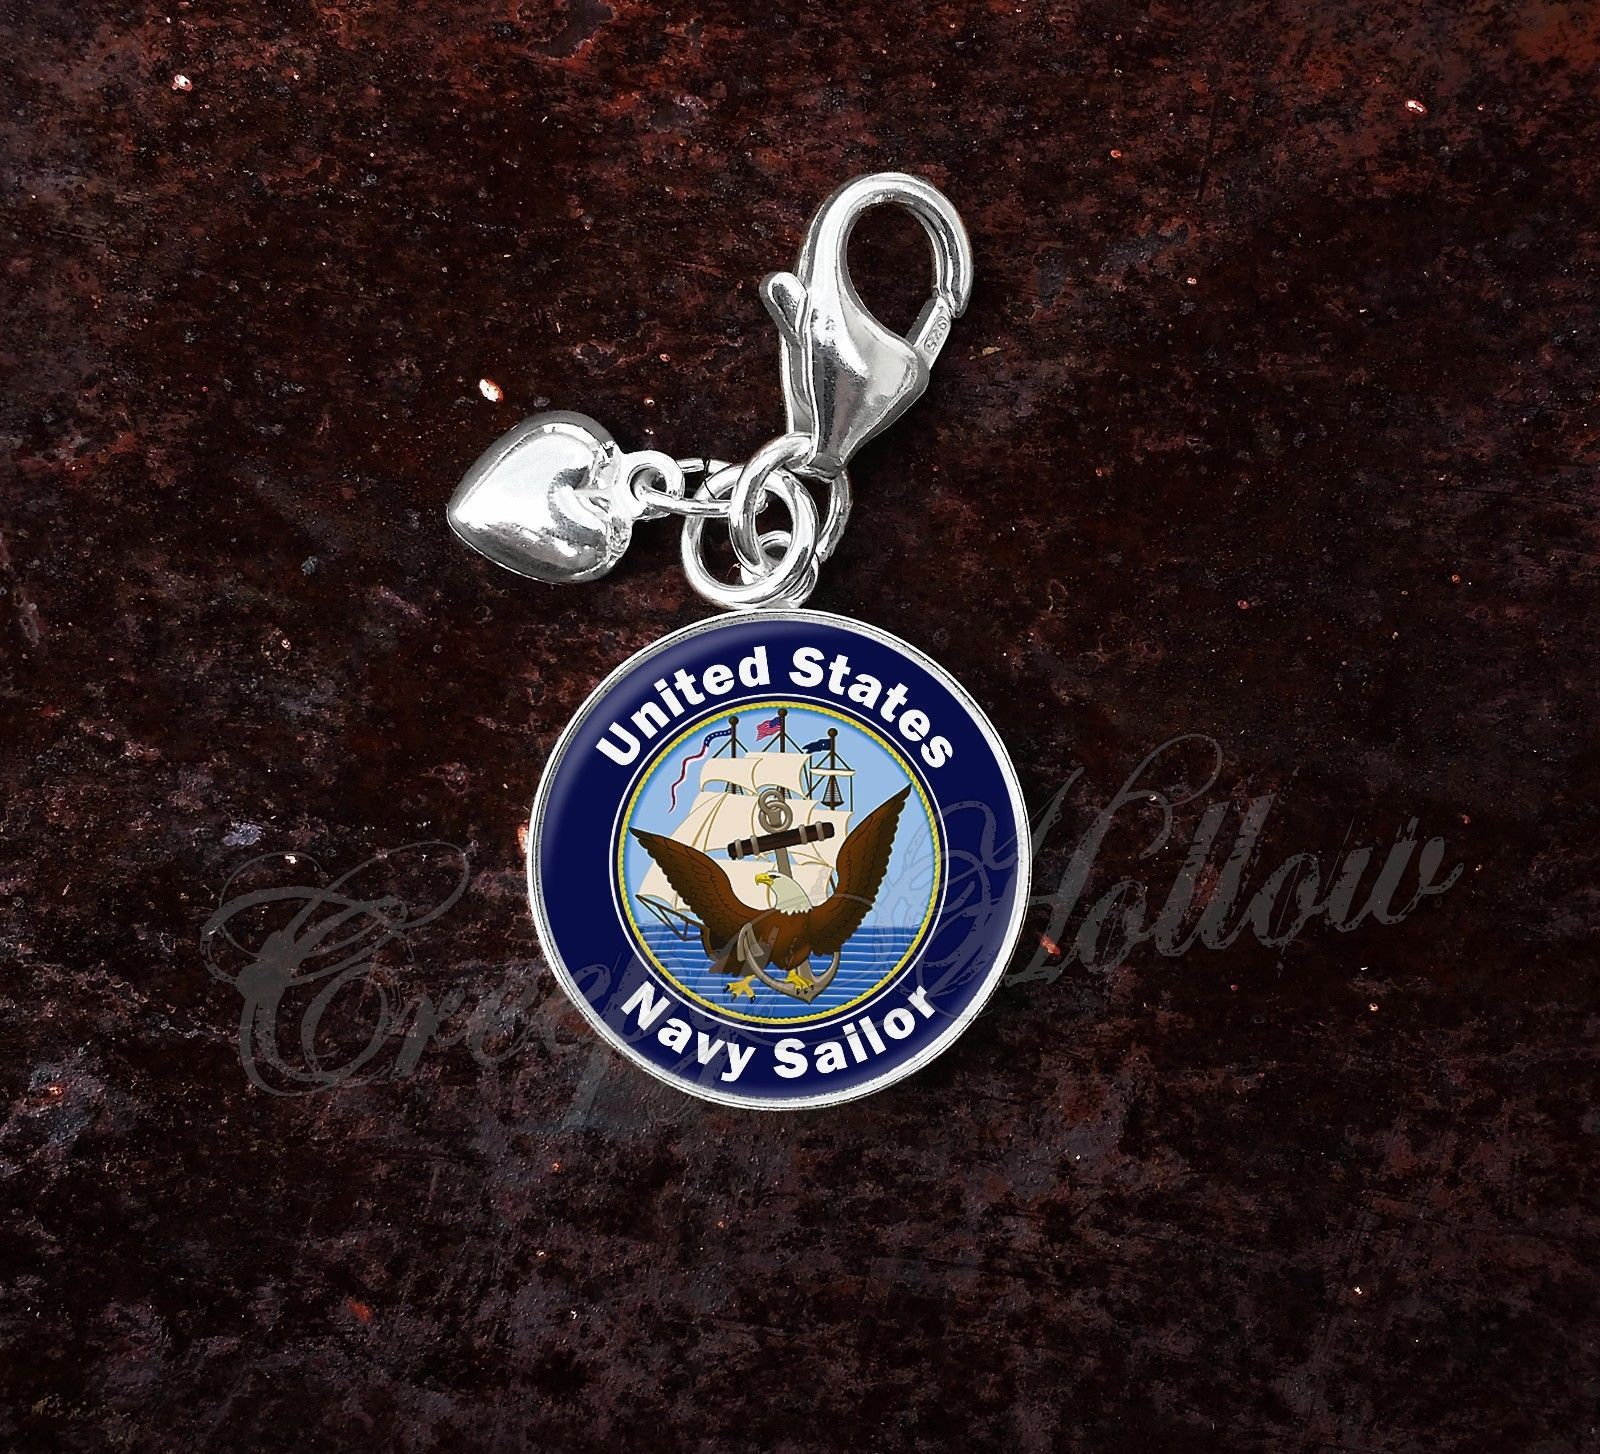 925 Sterling Silver Charm United States Navy Sailor